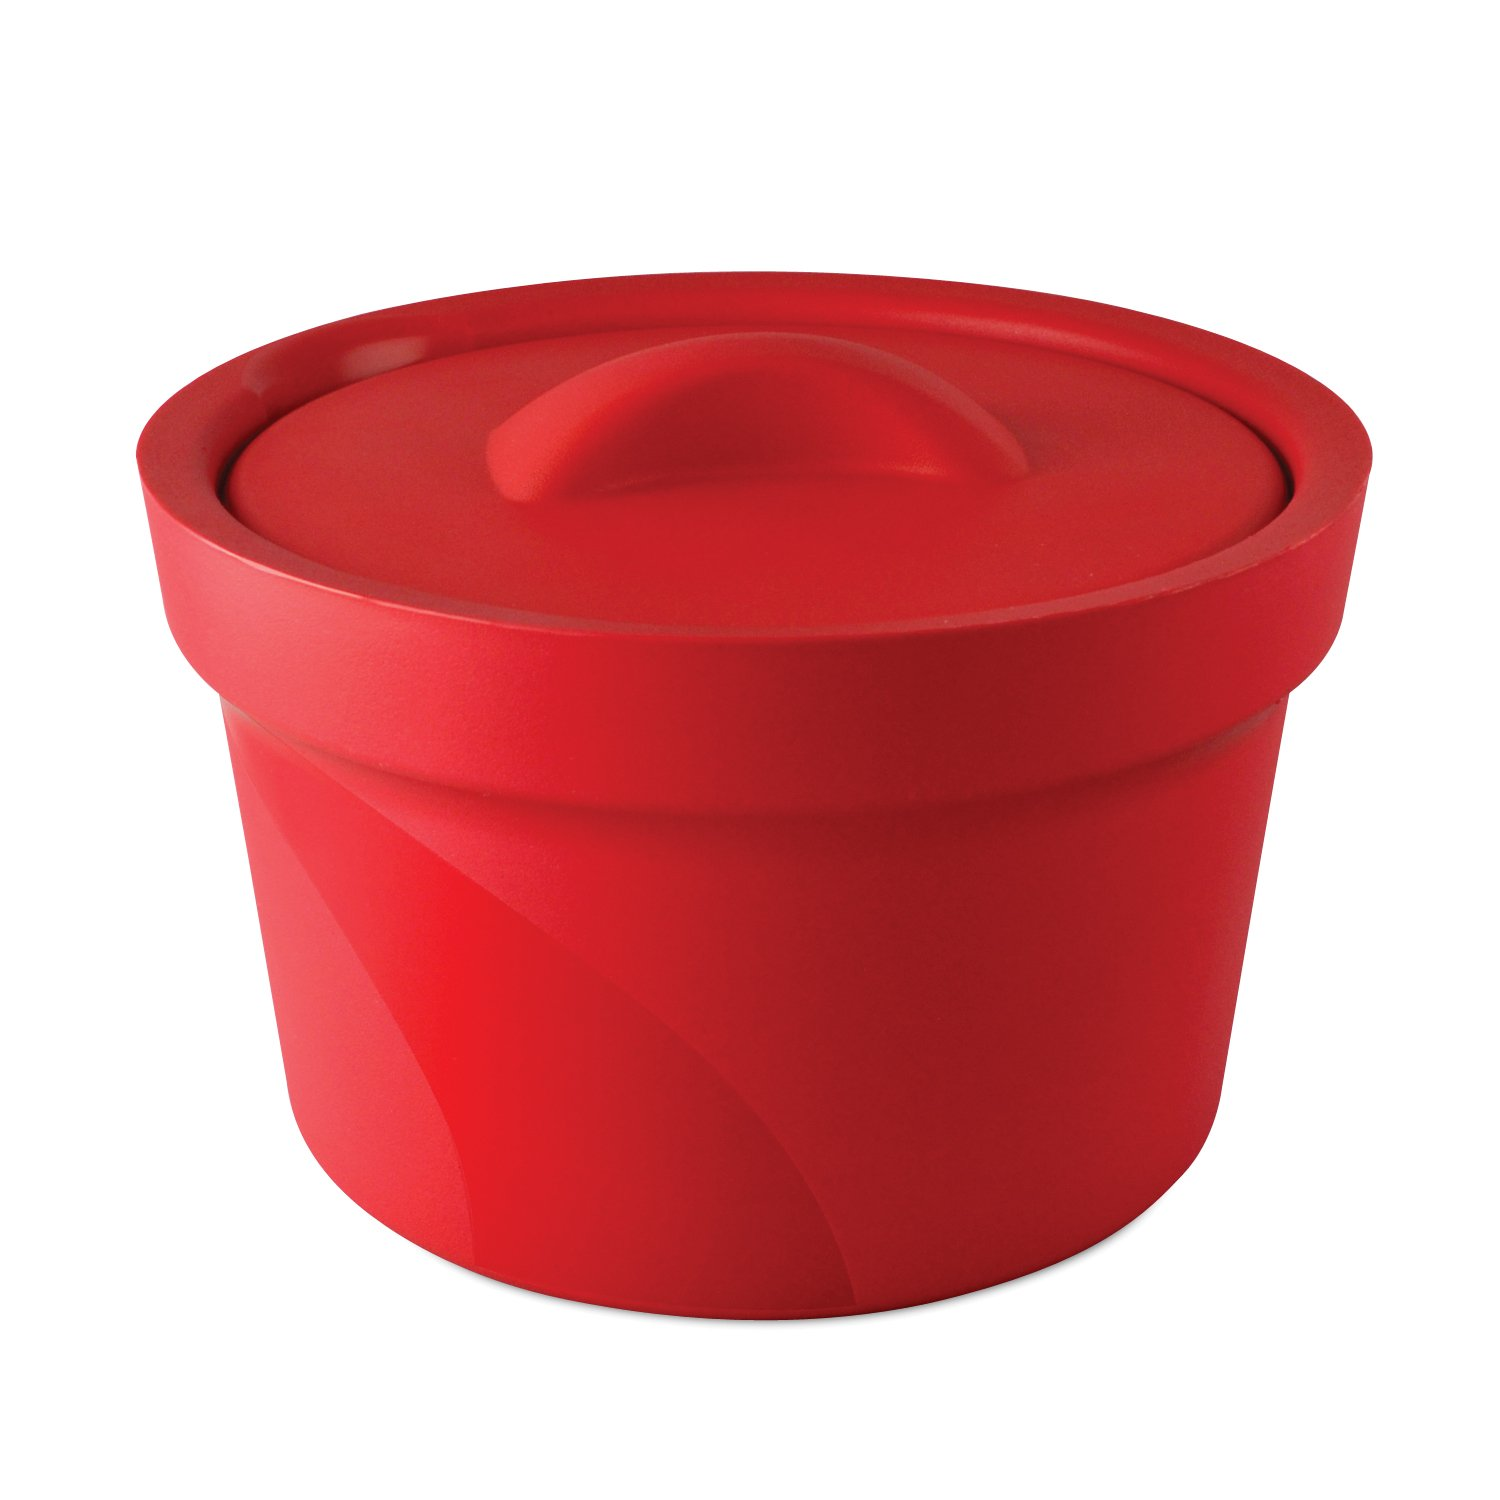 Bel-Art Magic Touch 2 High Performance Red Ice Bucket; 2.5 Liter, With Lid (M16807-2003)